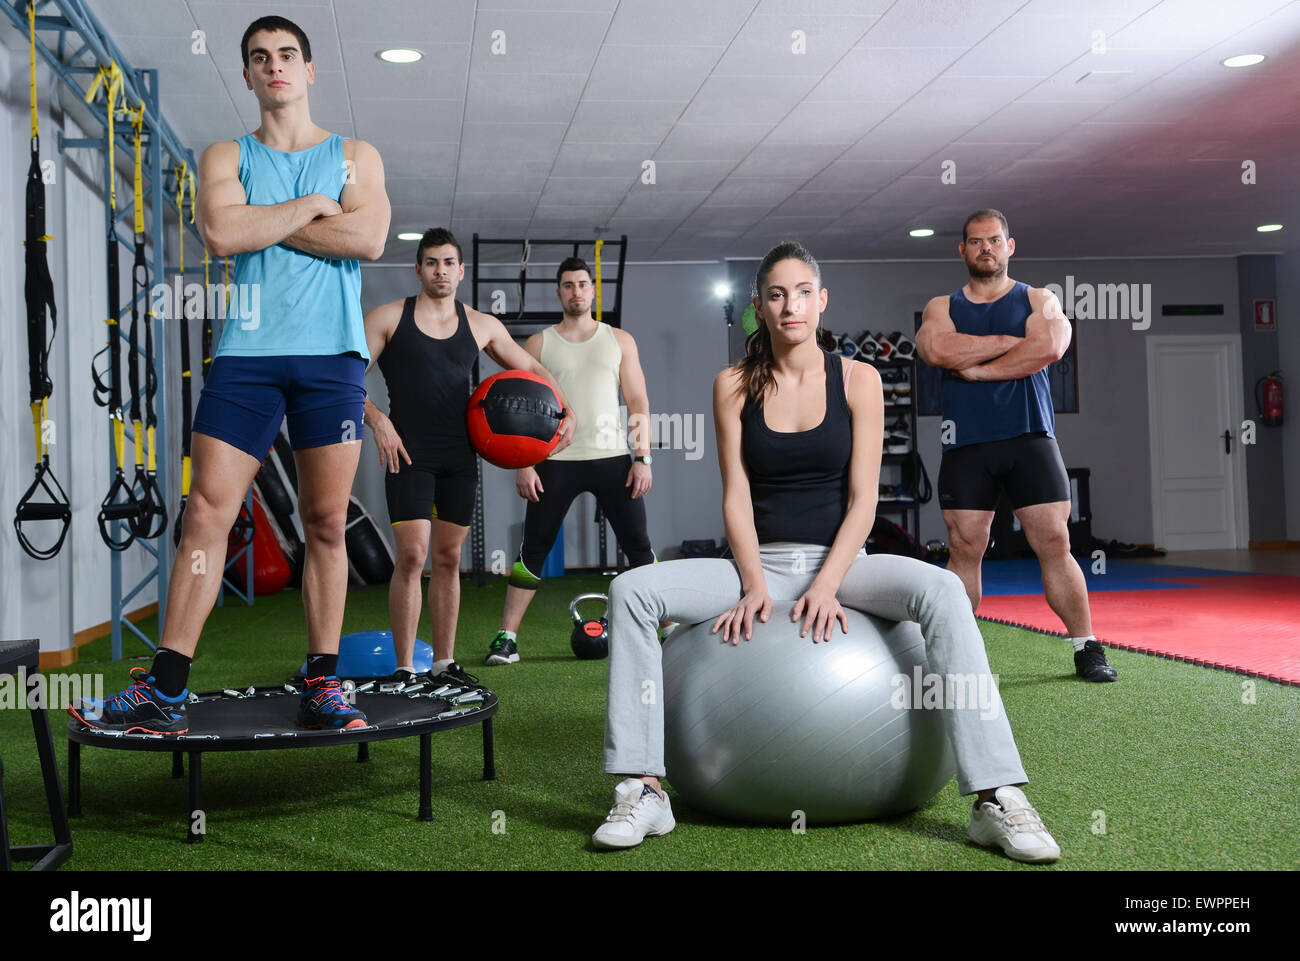 Crossfit group at gym ready for cross and fit exercises - Stock Image